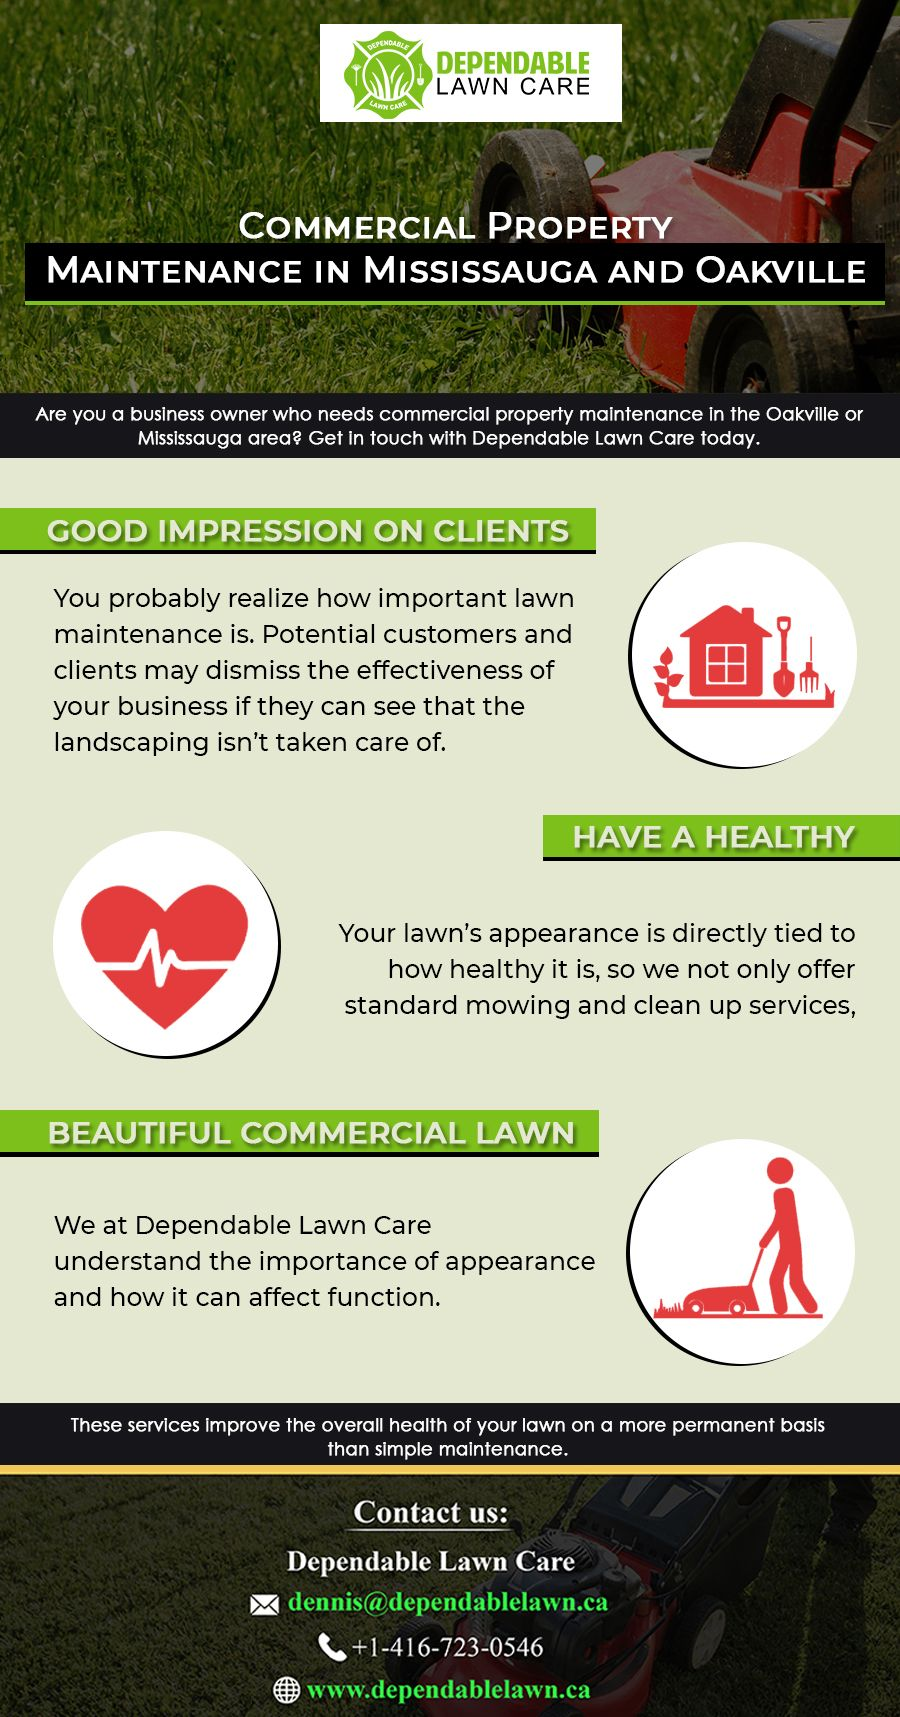 commercial lawn services near me on looking for commercial property maintenance service commercial property mississauga lawn care pinterest